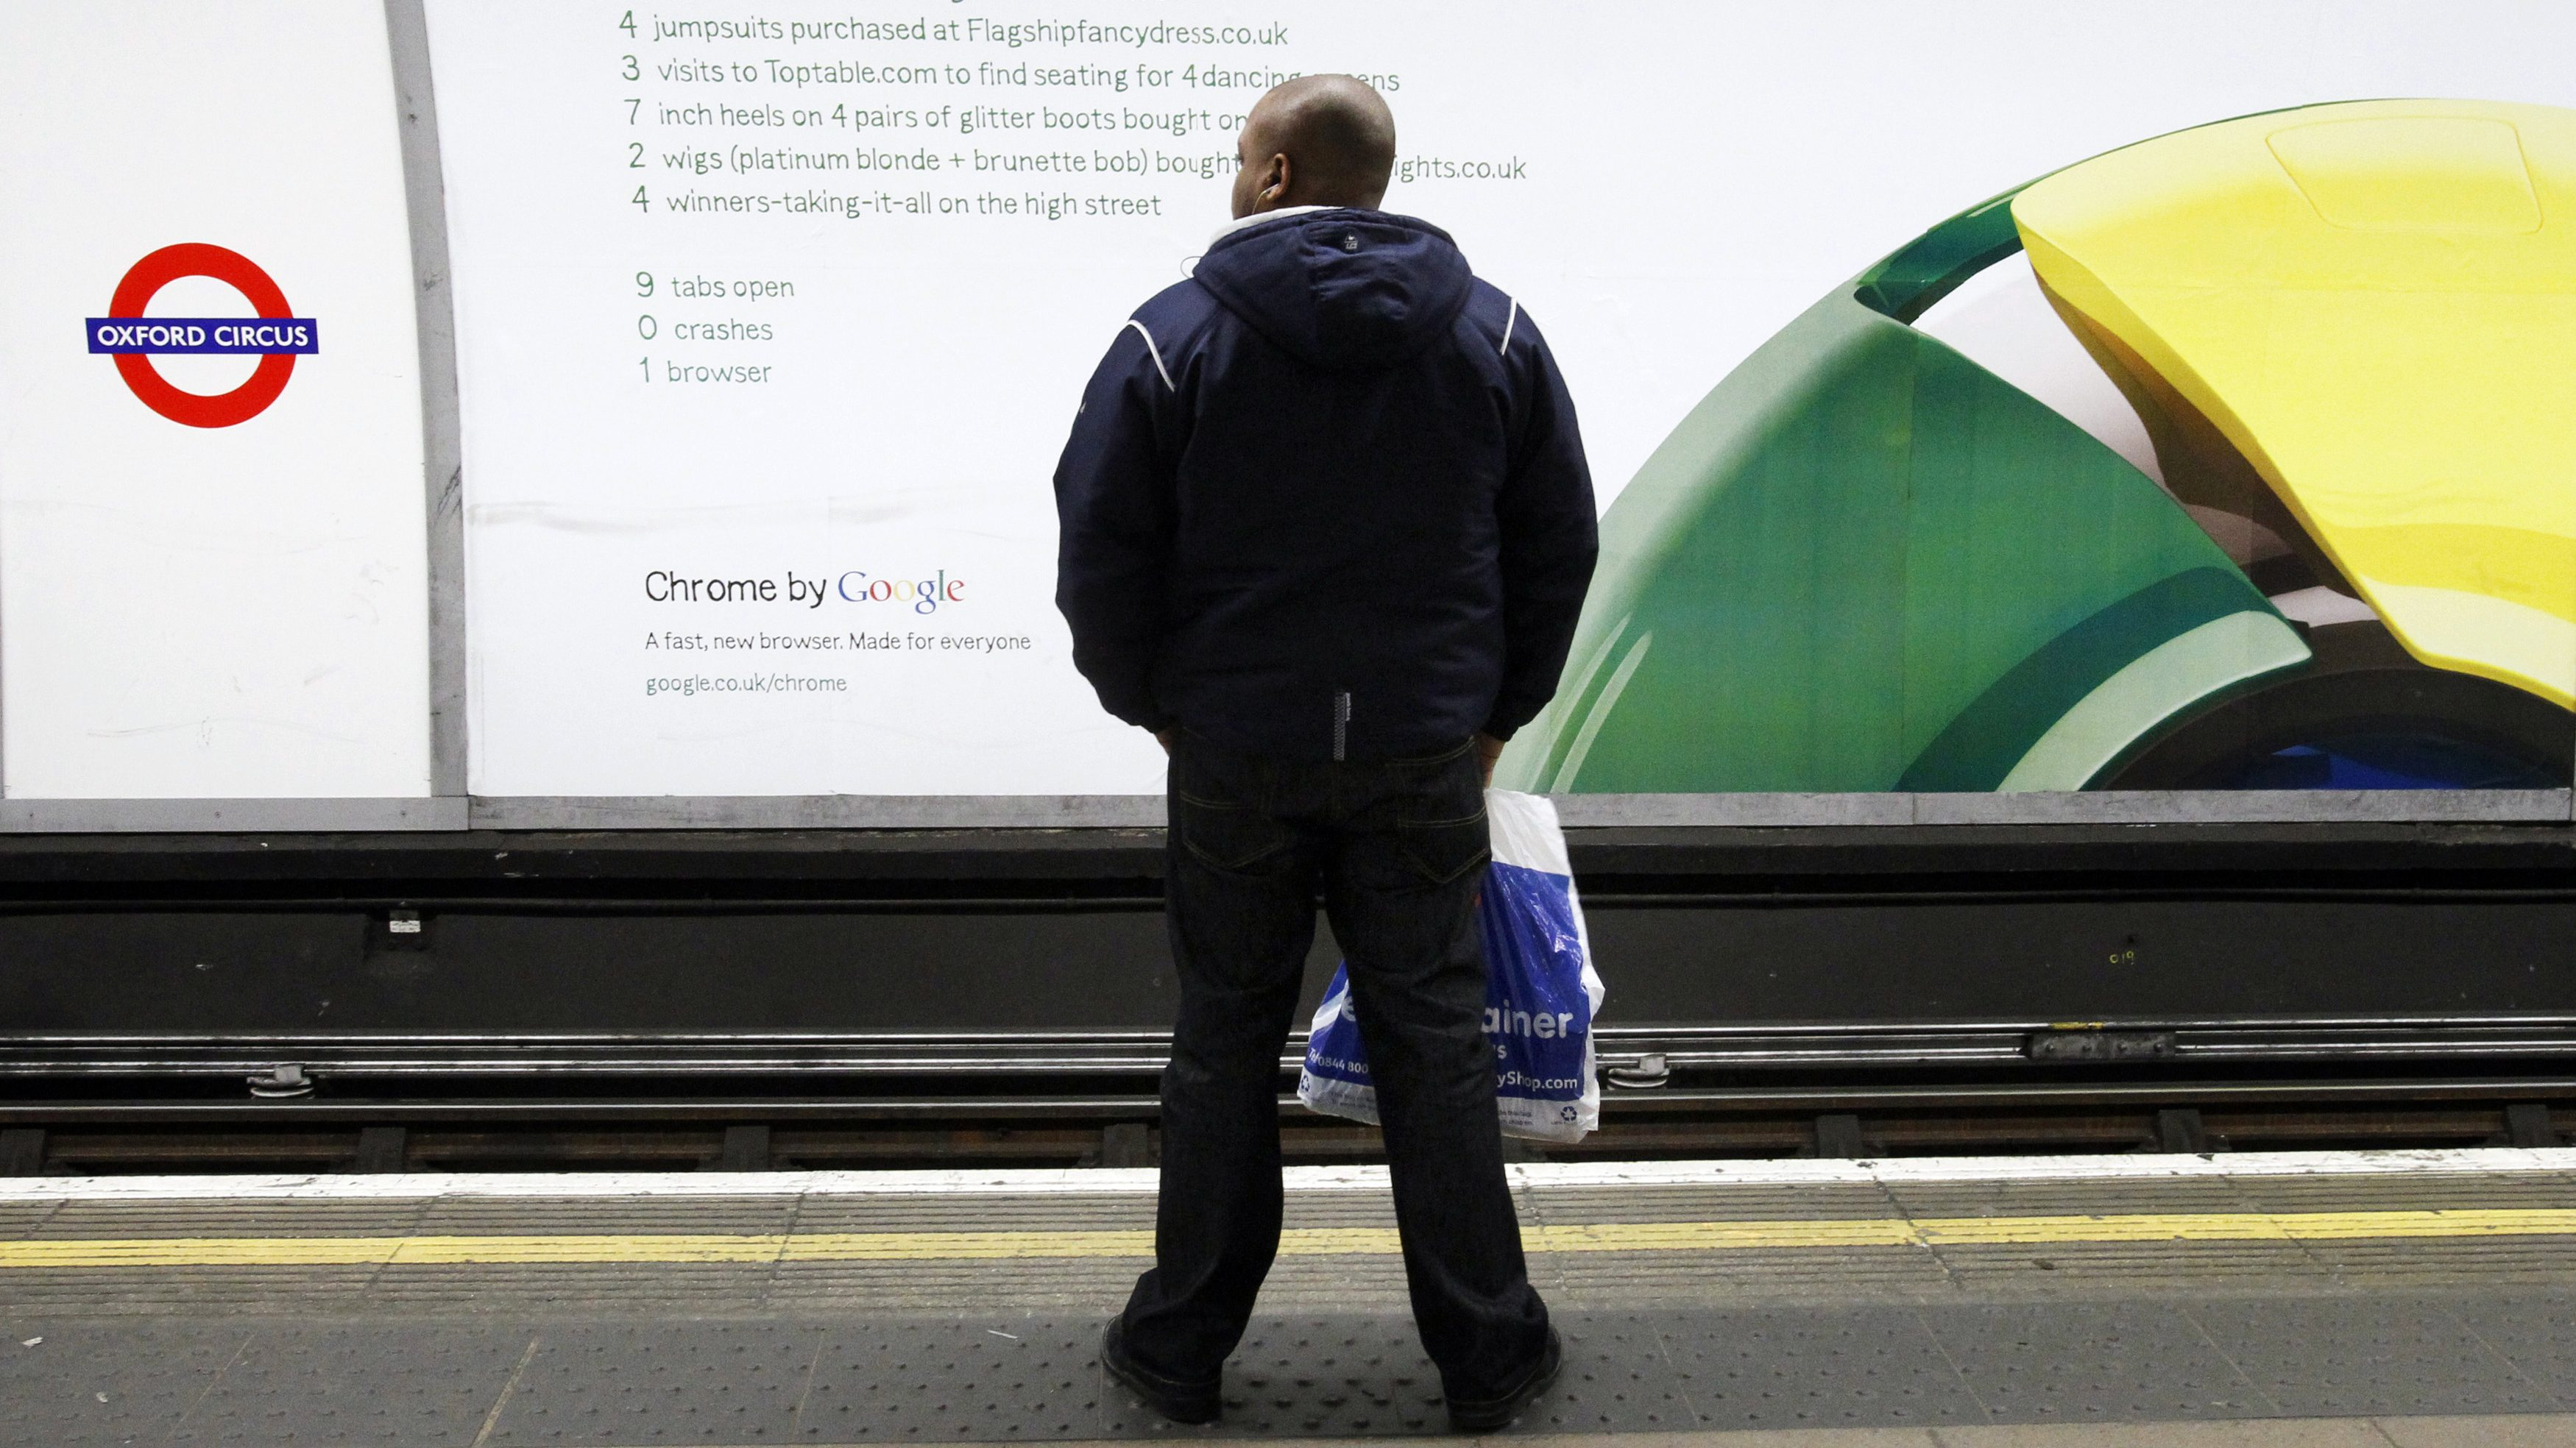 A man waits for a train in front of a poster for Google's Chrome browser in an underground station in London